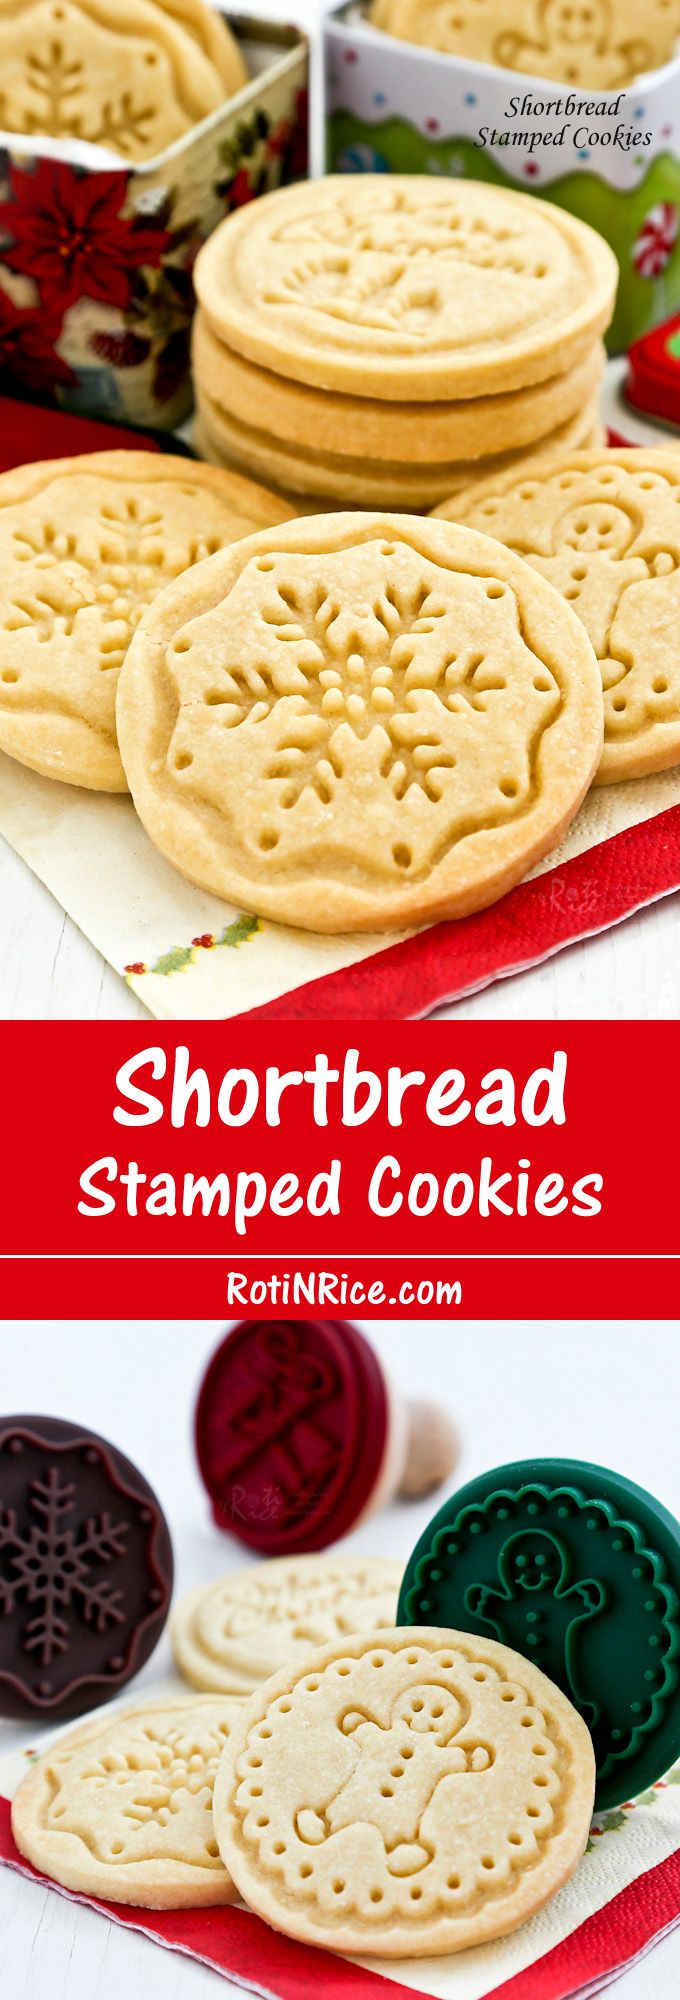 Buttery melt-in-the-mouth Shortbread Stamped Cookies using only 4 simple ingredients. A beautiful and delicious addition to any holiday.   RotiNRice.com